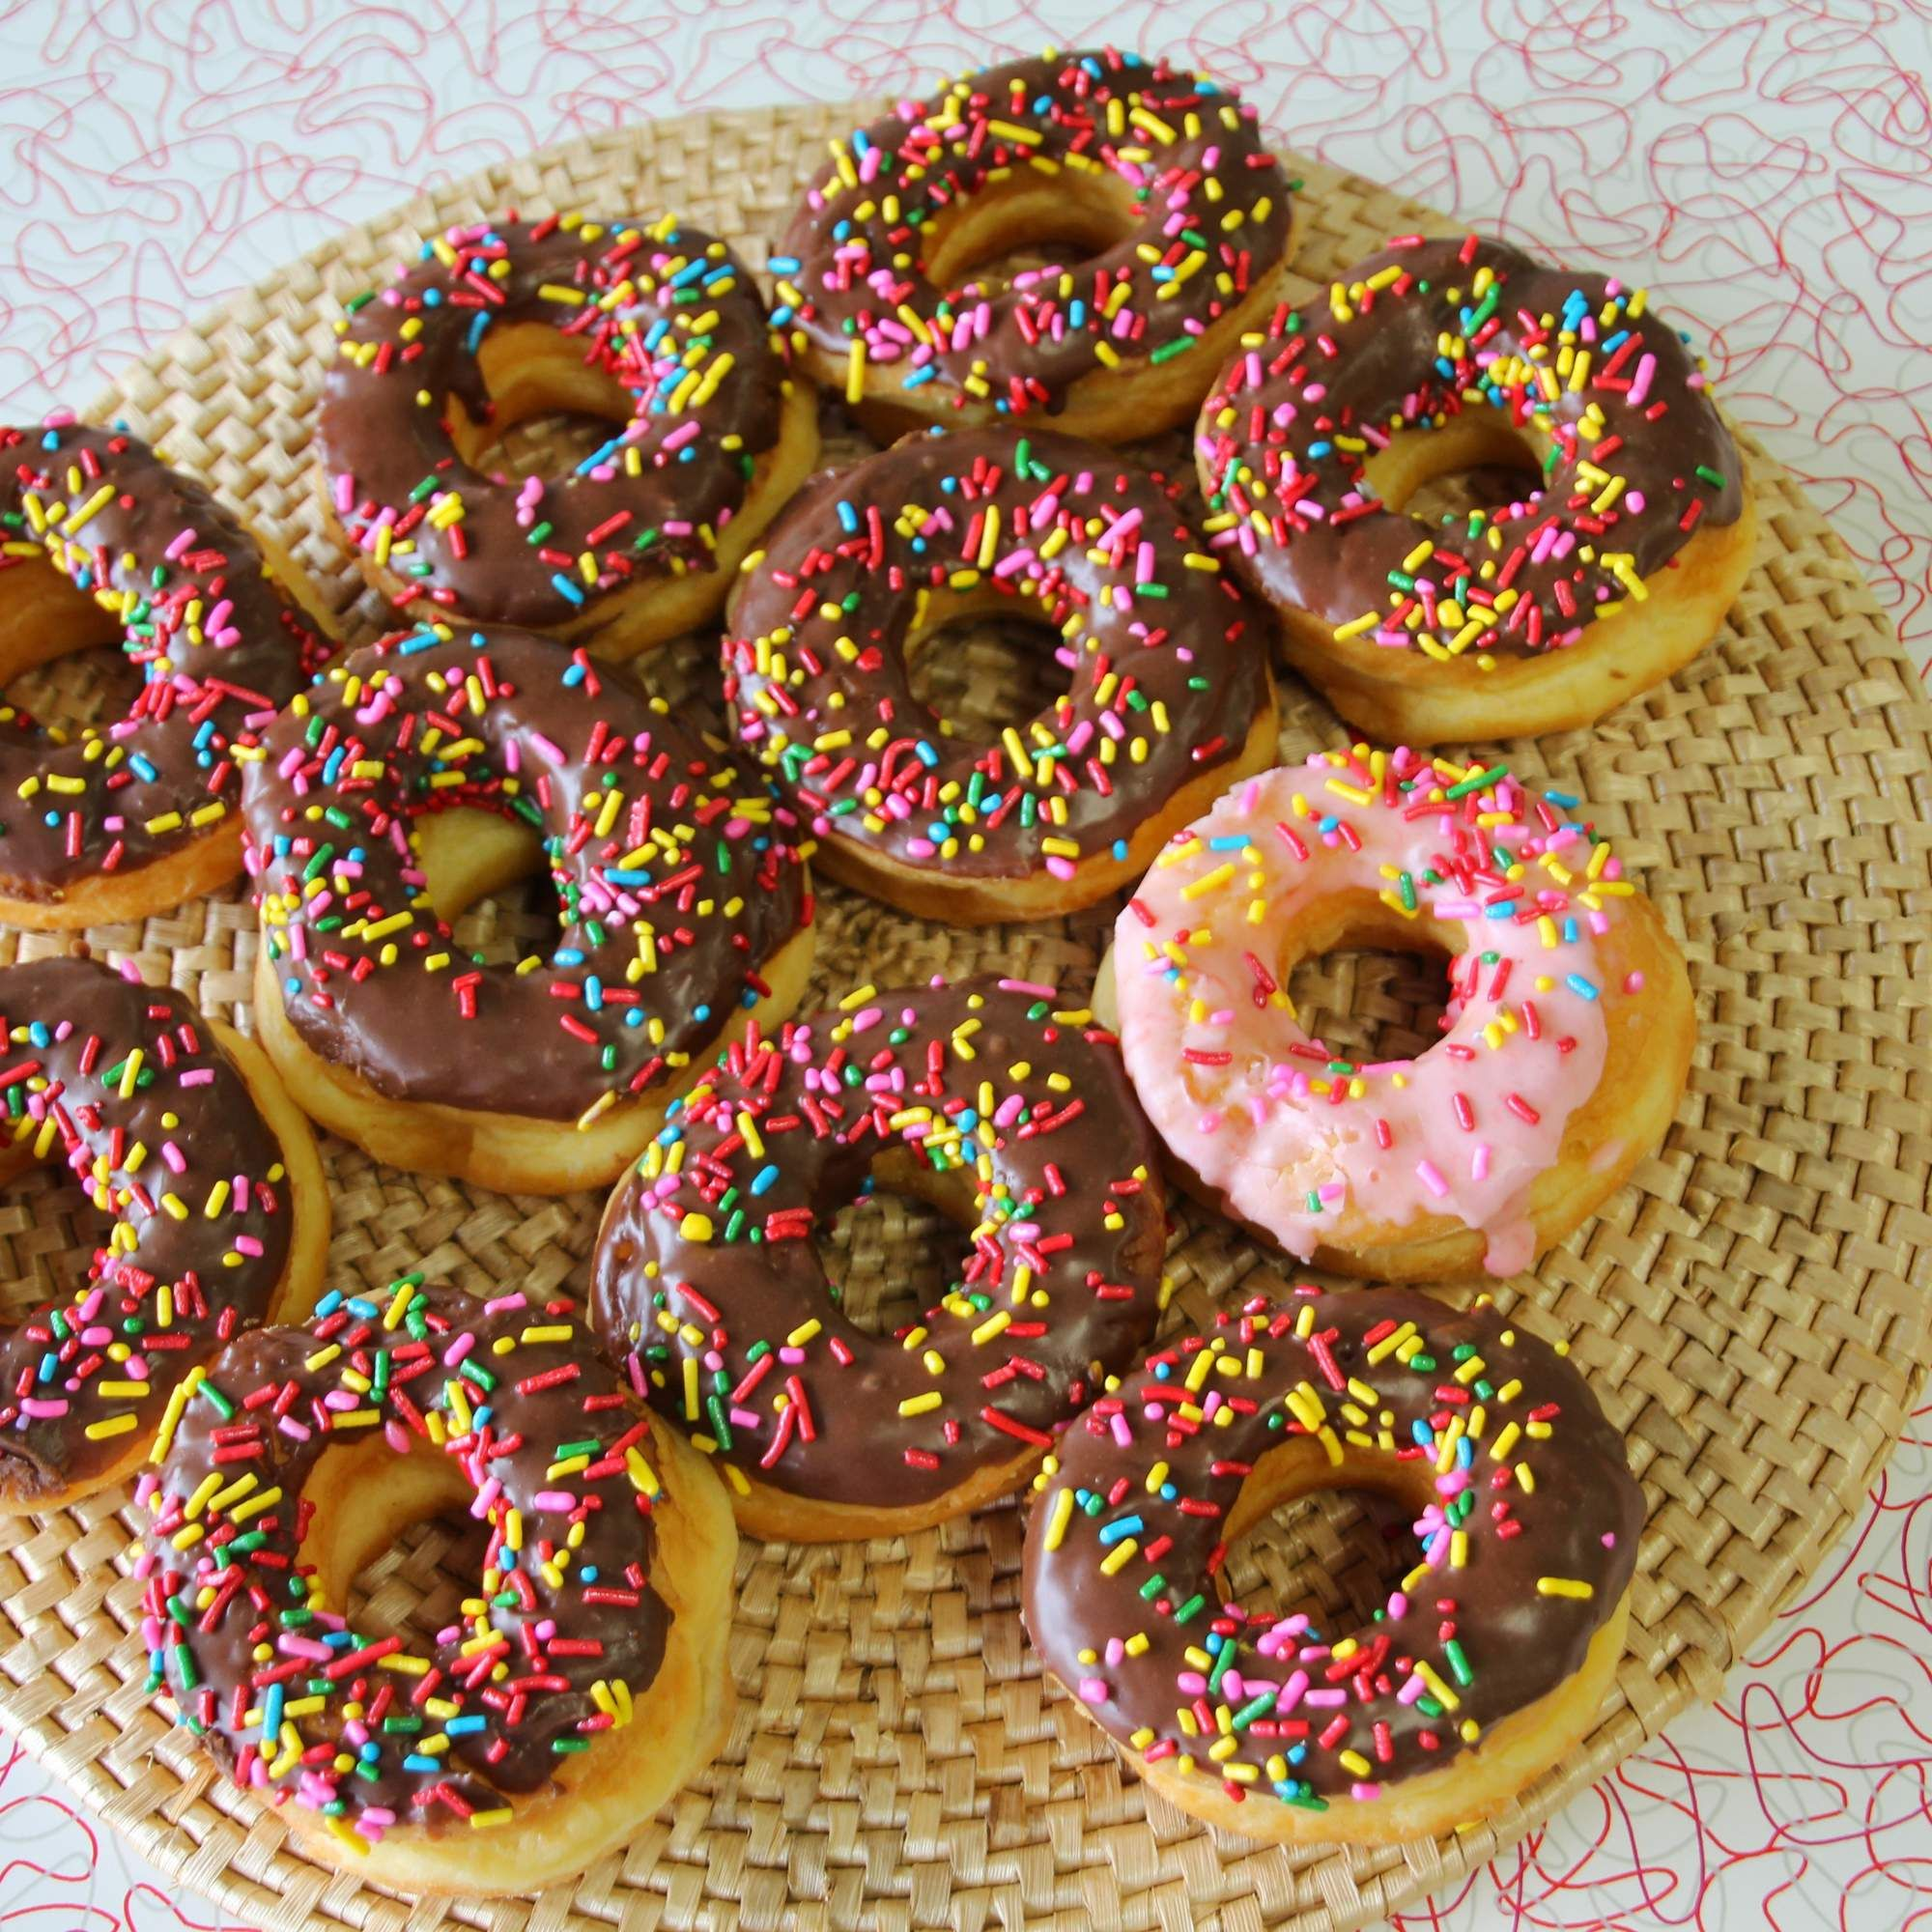 Best donut shops in America, for great donuts coast to coast